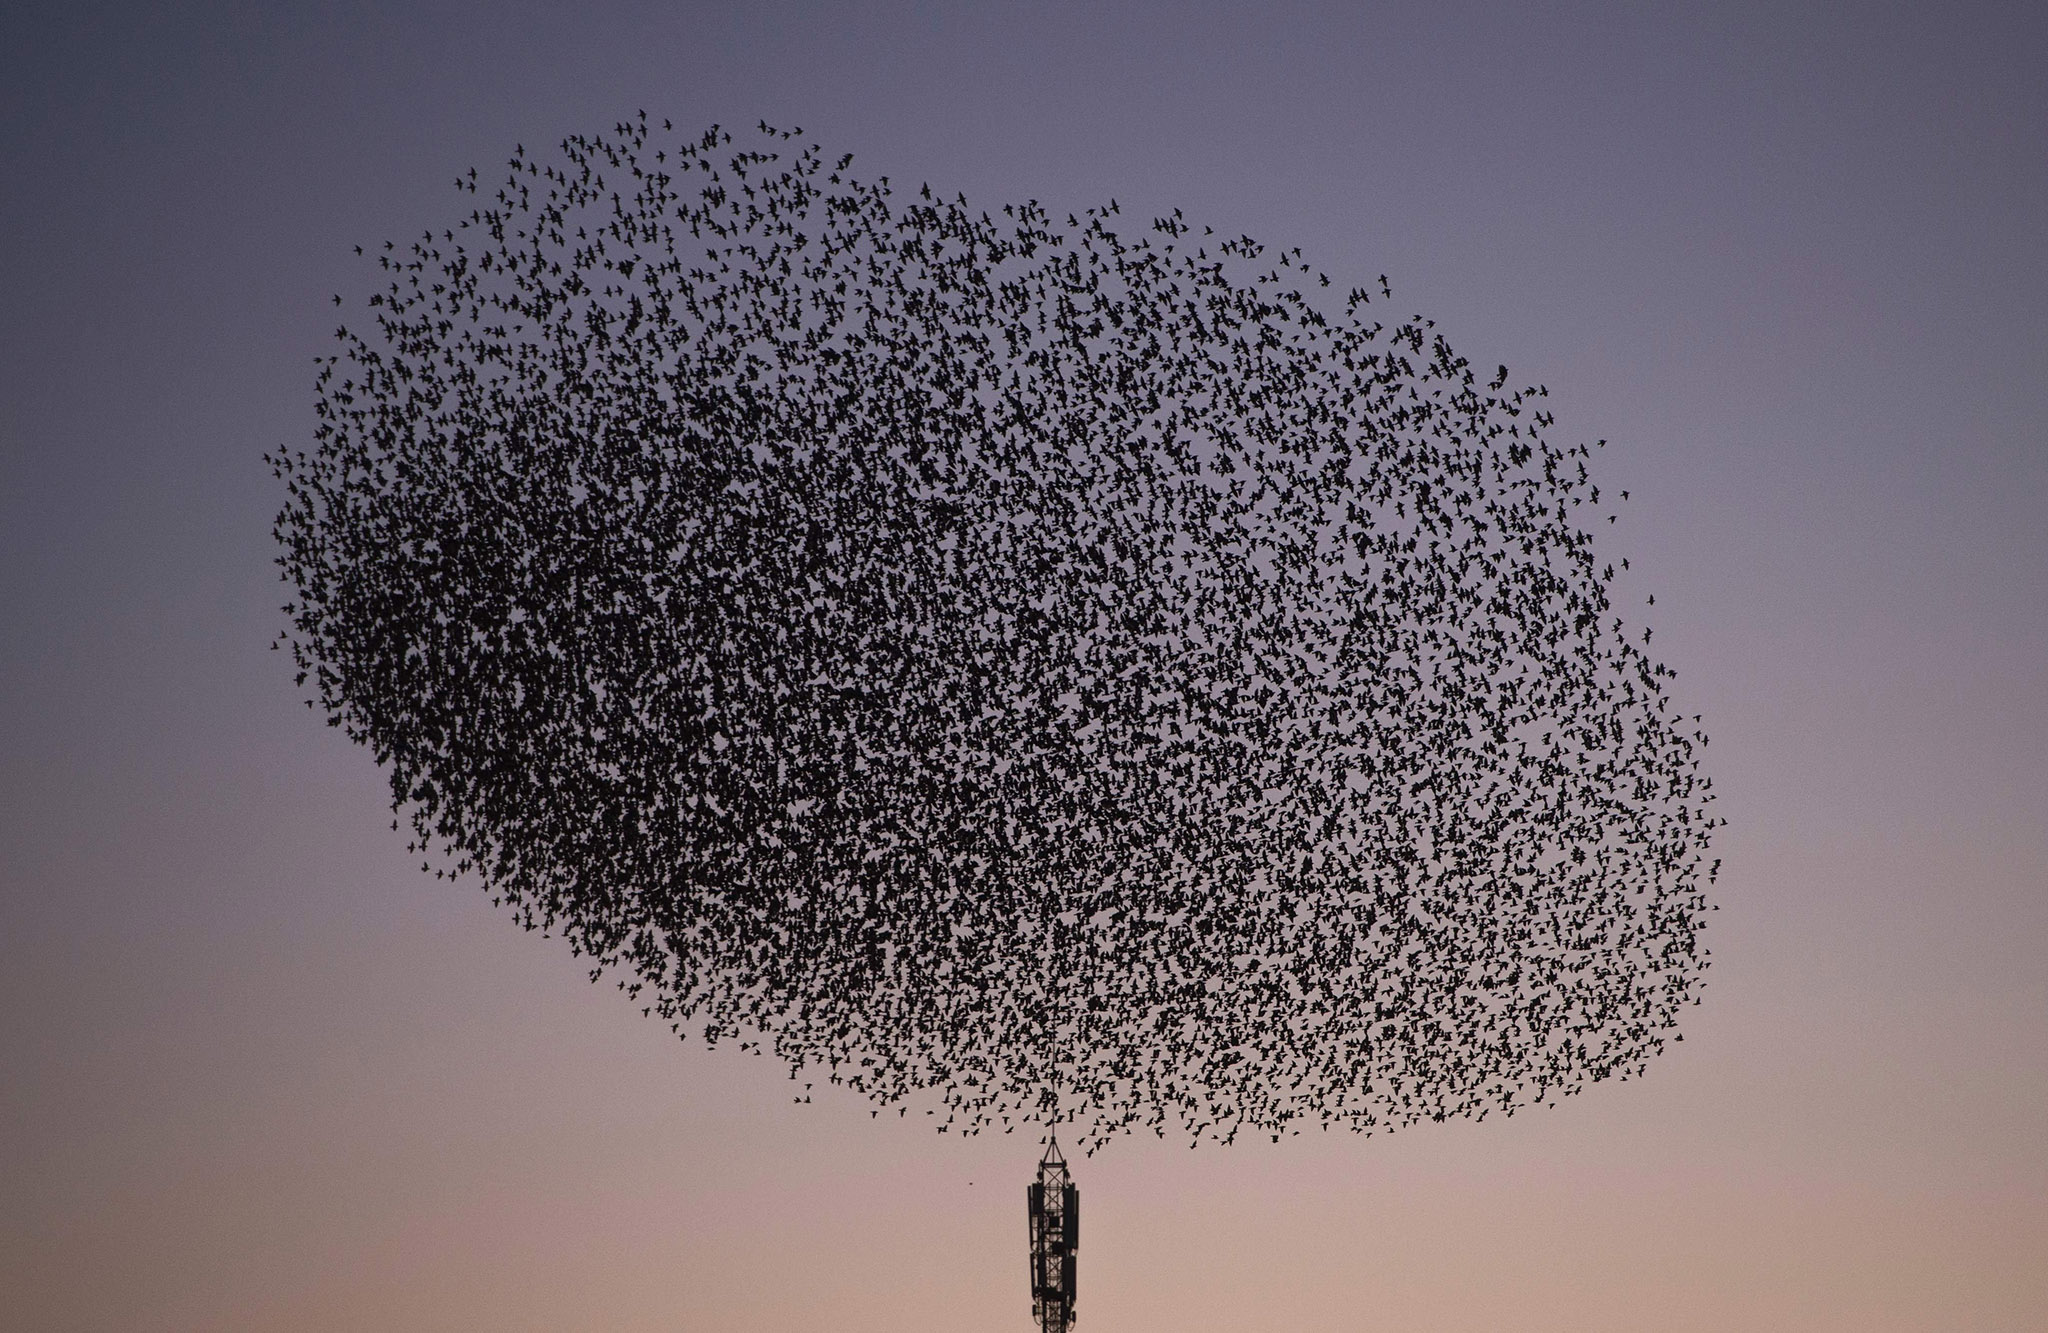 A picture taken on January 17, 2016 shows a murmuration of starlings in the sky of Pontevedra, northwestern Spain. / AFP PHOTO / MIGUEL RIOPAMIGUEL RIOPA/AFP/Getty Images